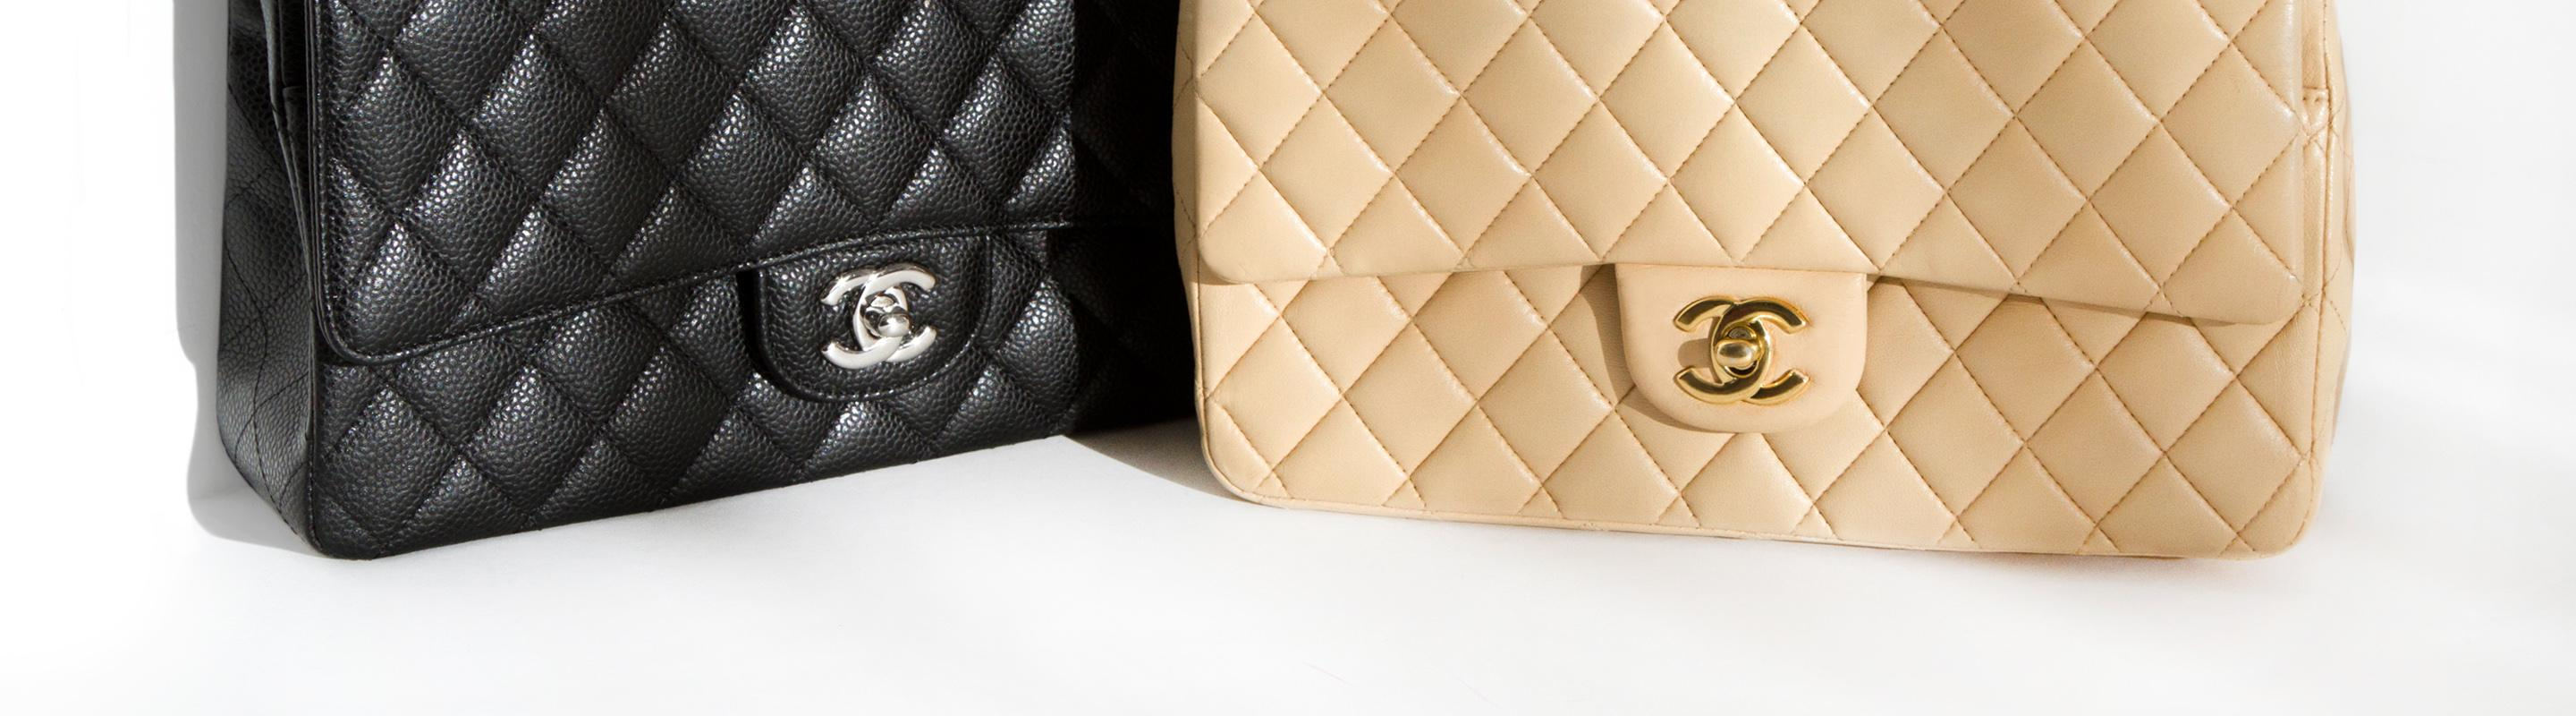 Chanel Bags – Buy Authentic Purses Online at Tradesy